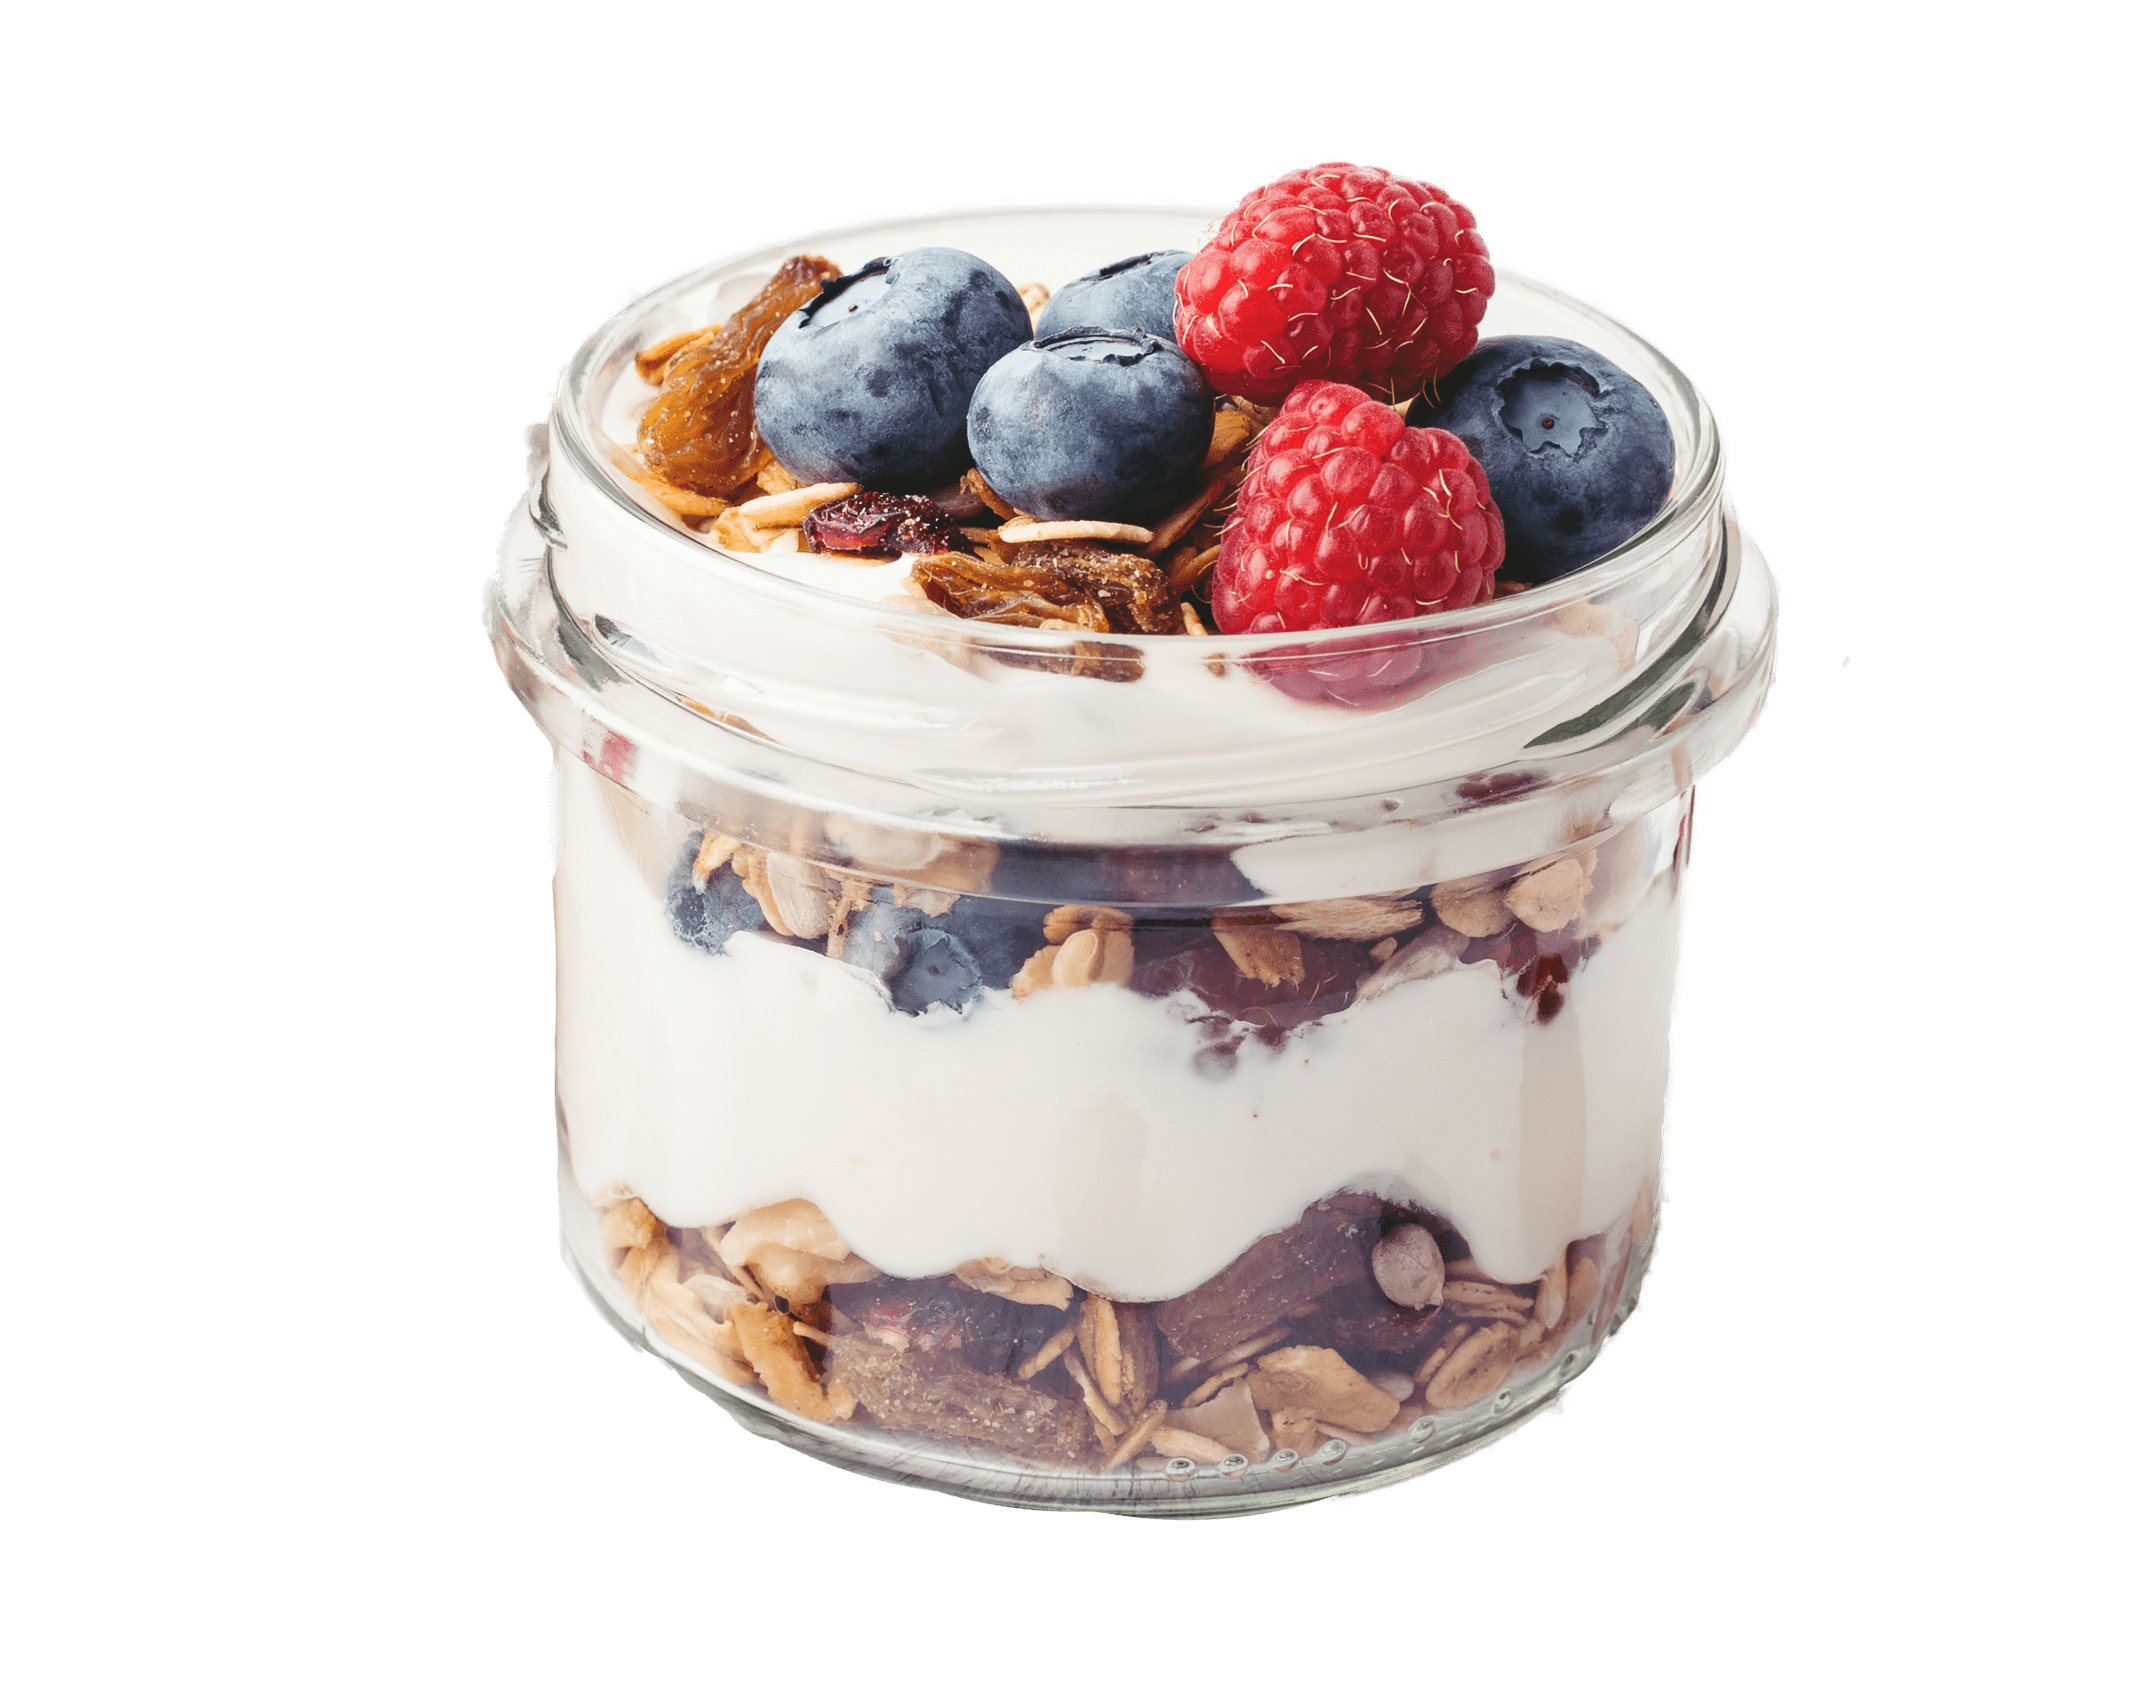 Greek yogurt parfait in a jar with berries and granola